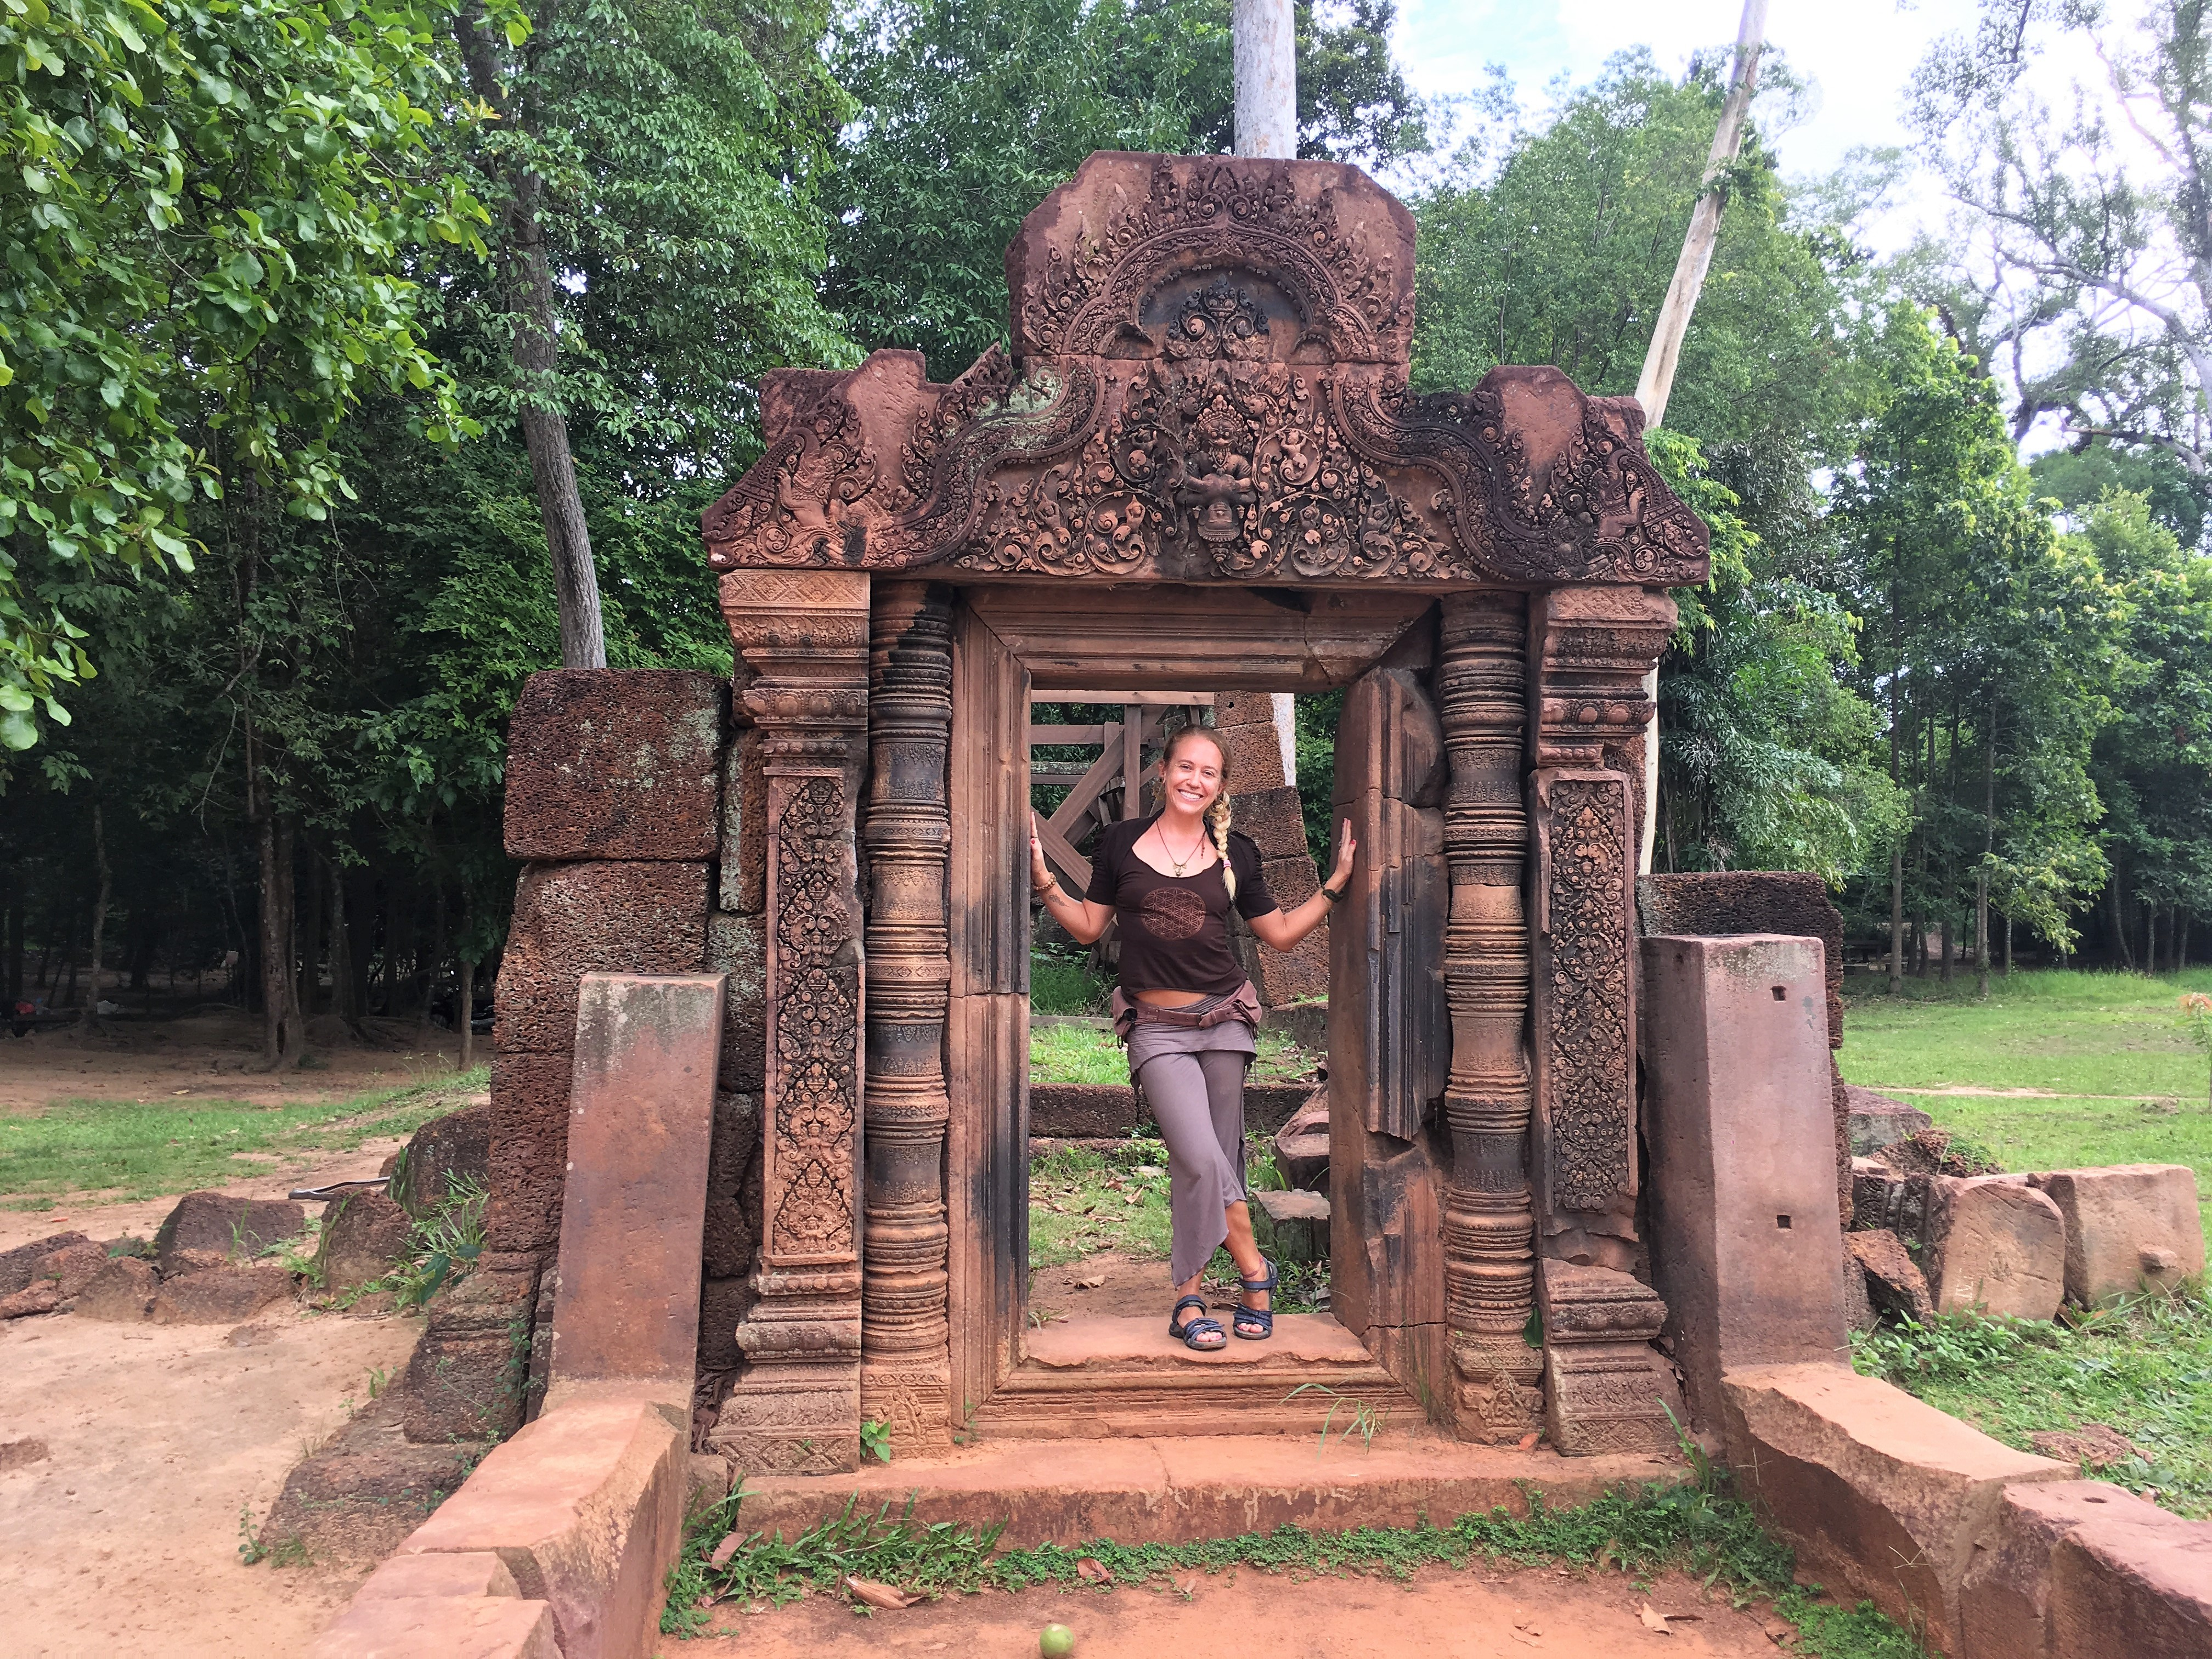 How to Break 3 Myths About Being a Spiritual Entrepreneur lindsay nova cambodia angkor wat travel yoga teacher